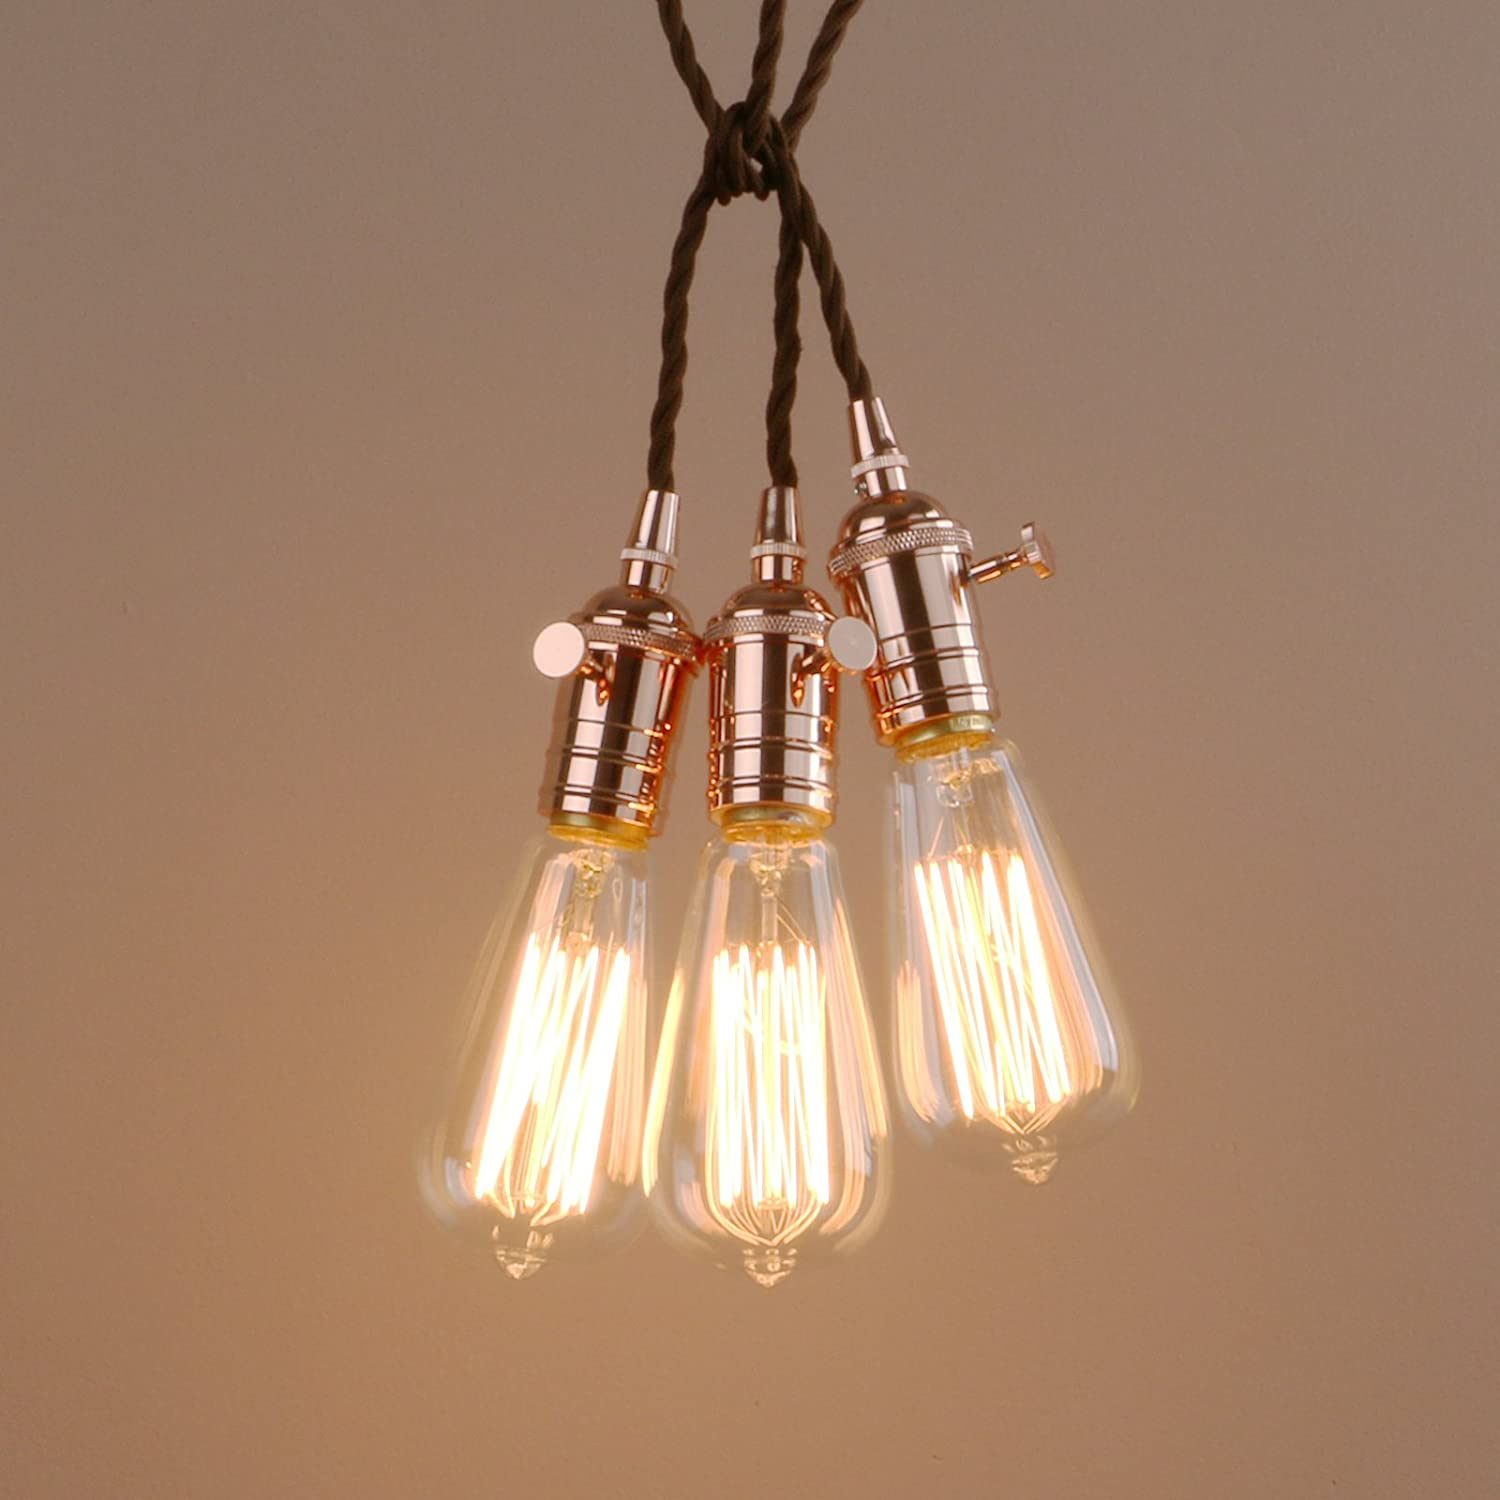 with balloon llc design bulb light consignment metal p chandelier